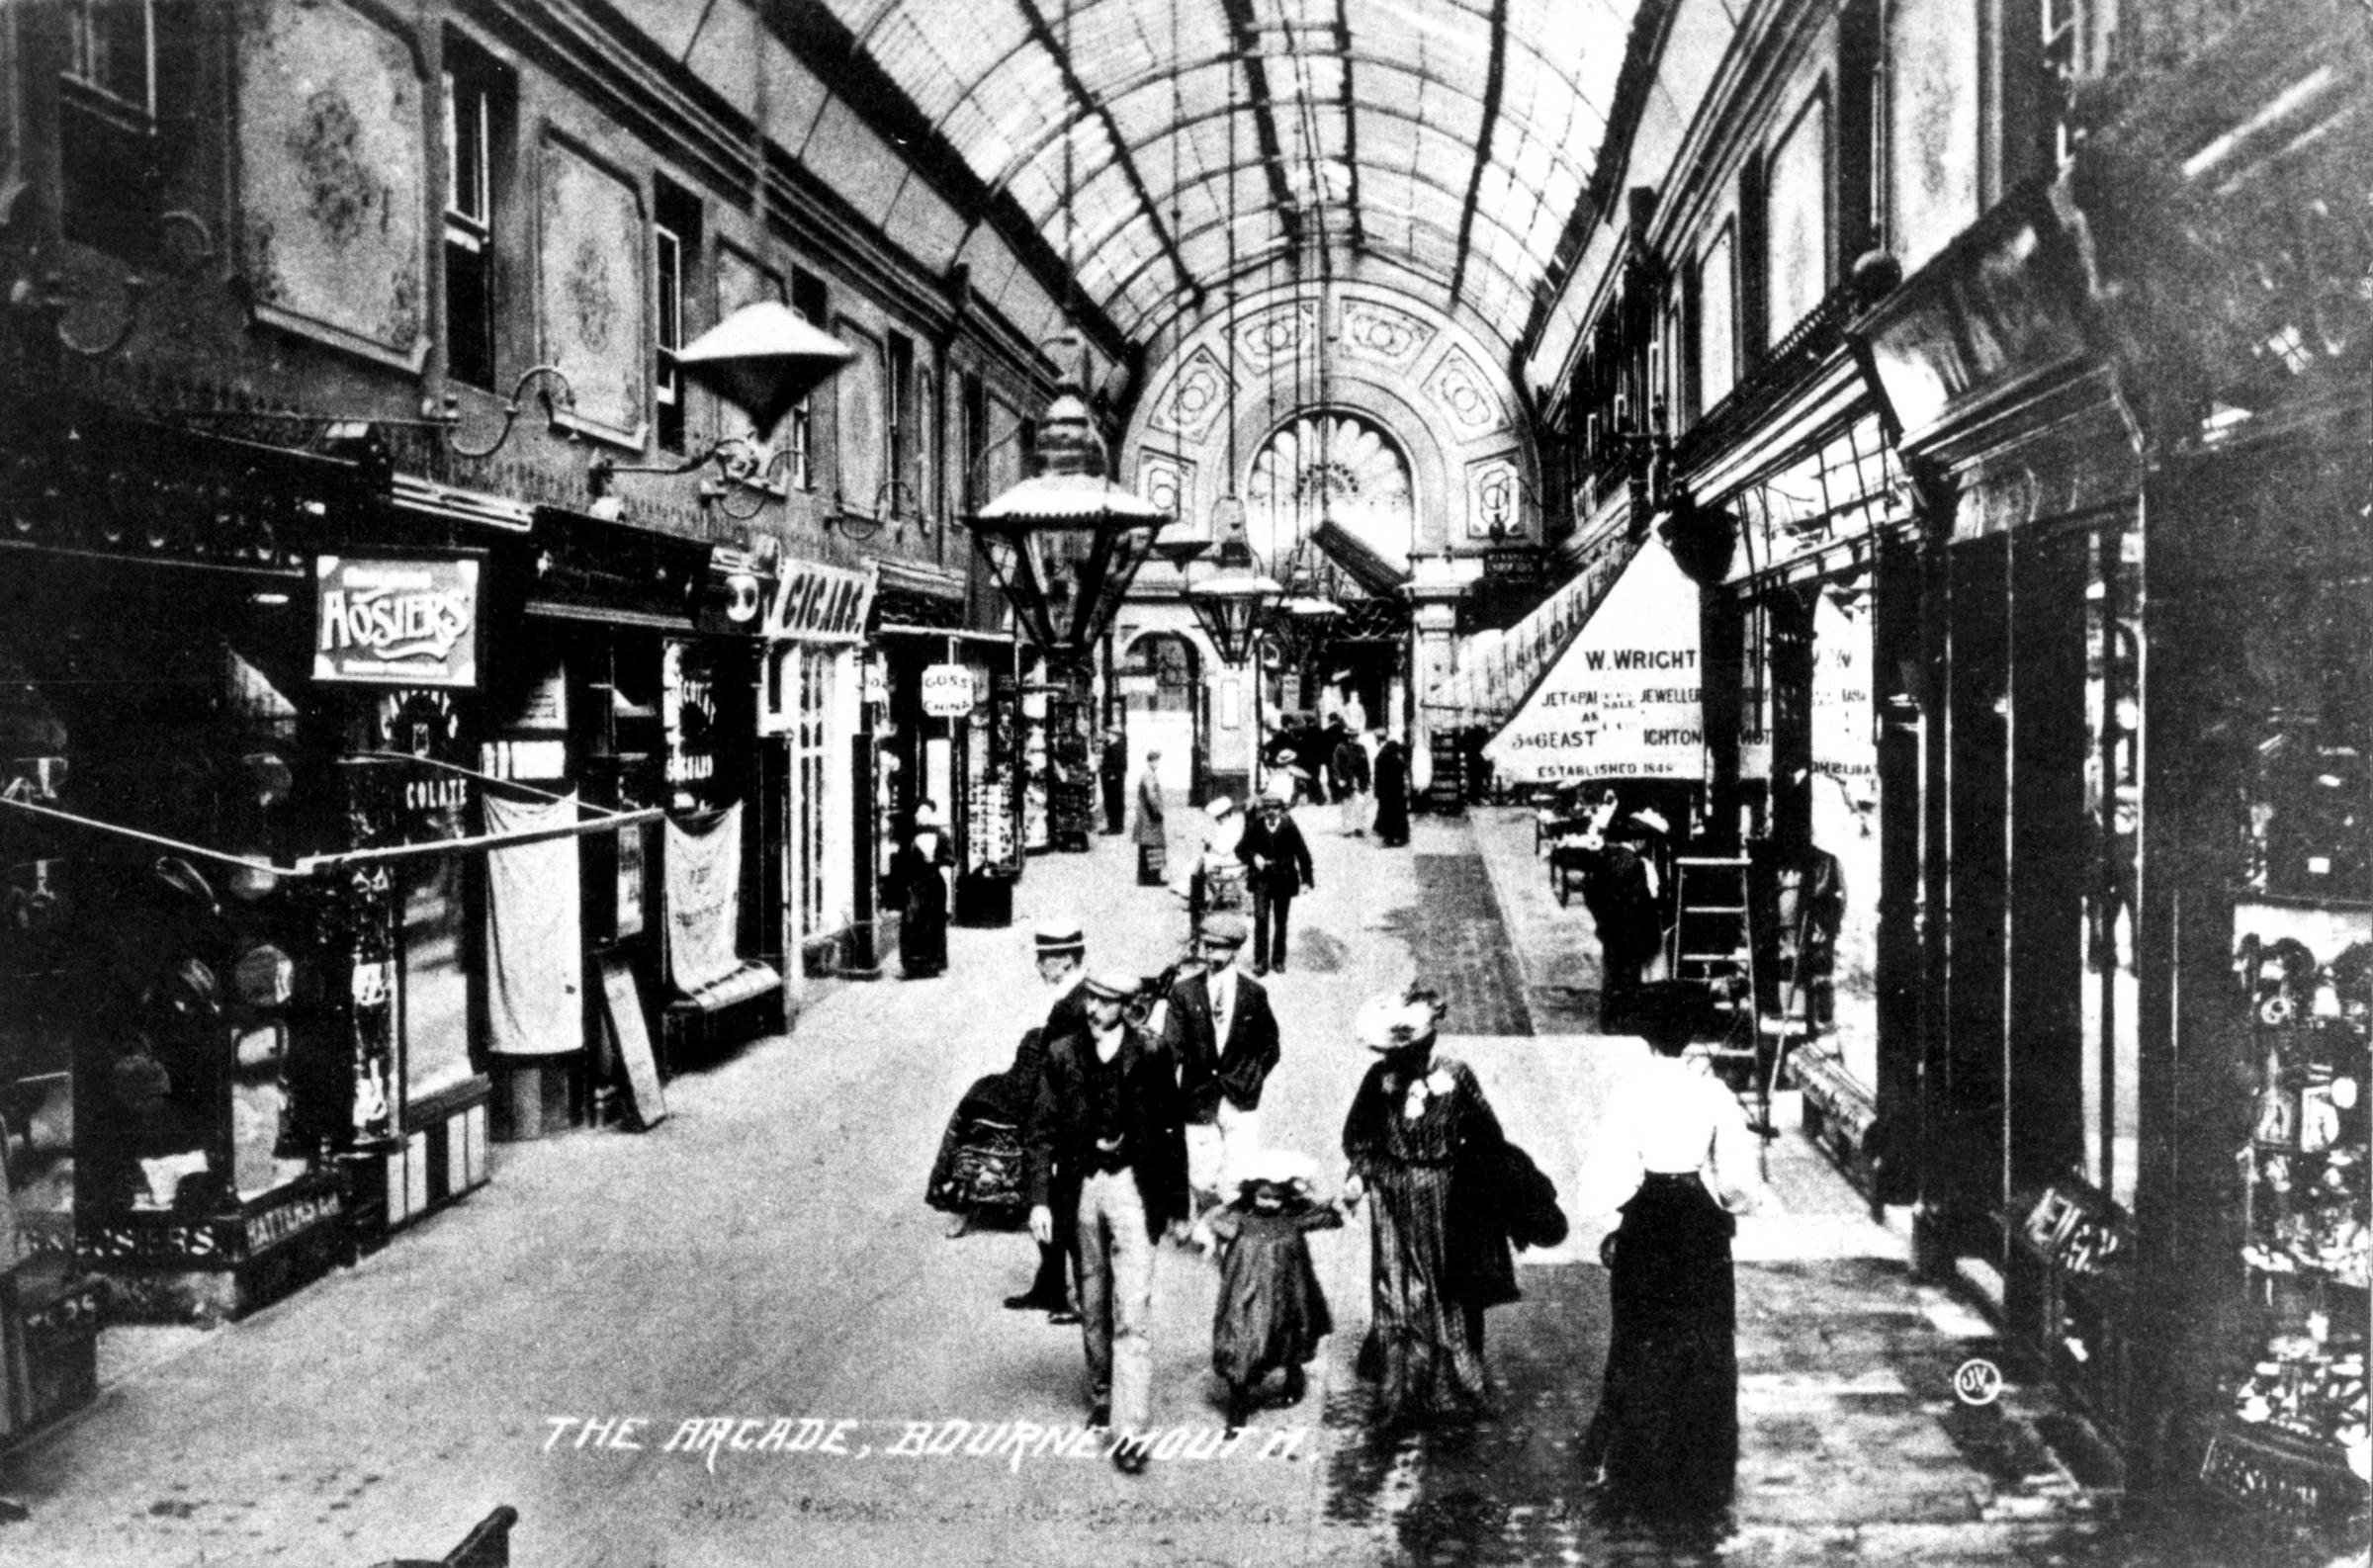 The Arcade Bournemouth pictured here in 1907,  also known as Henry Joy's Arcade and Gervis Arcade runs between Gervis Place and Old Christchurch Road.  The arcade building was originally constructed as two rows of shops, by Henry Joy in 1866. Six year